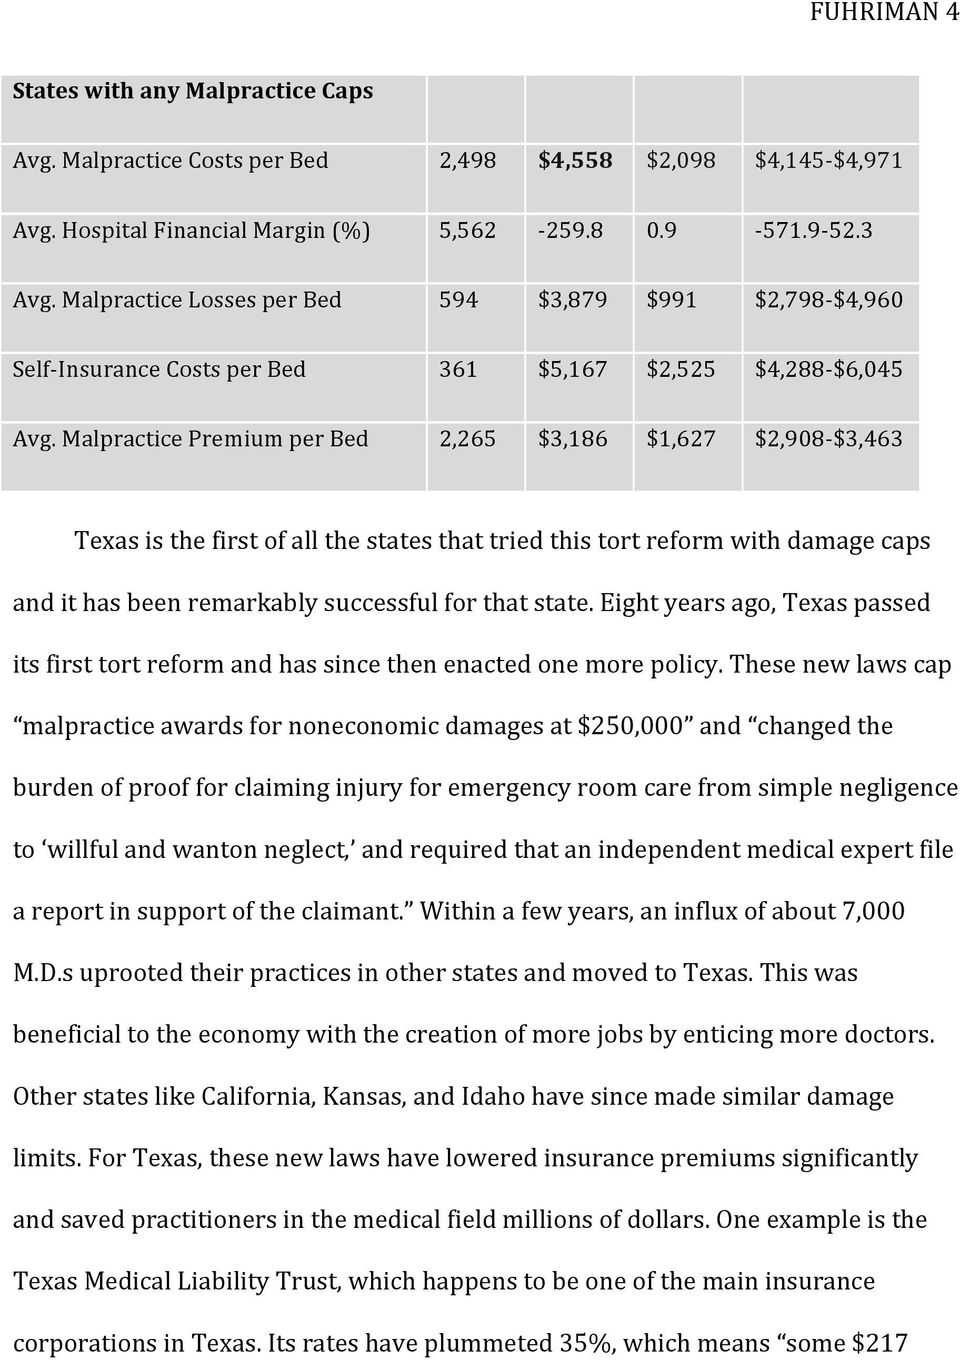 Malpractice Premium per Bed 2,265 $3,186 $1,627 $2,908- $3,463 Texas is the first of all the states that tried this tort reform with damage caps and it has been remarkably successful for that state.